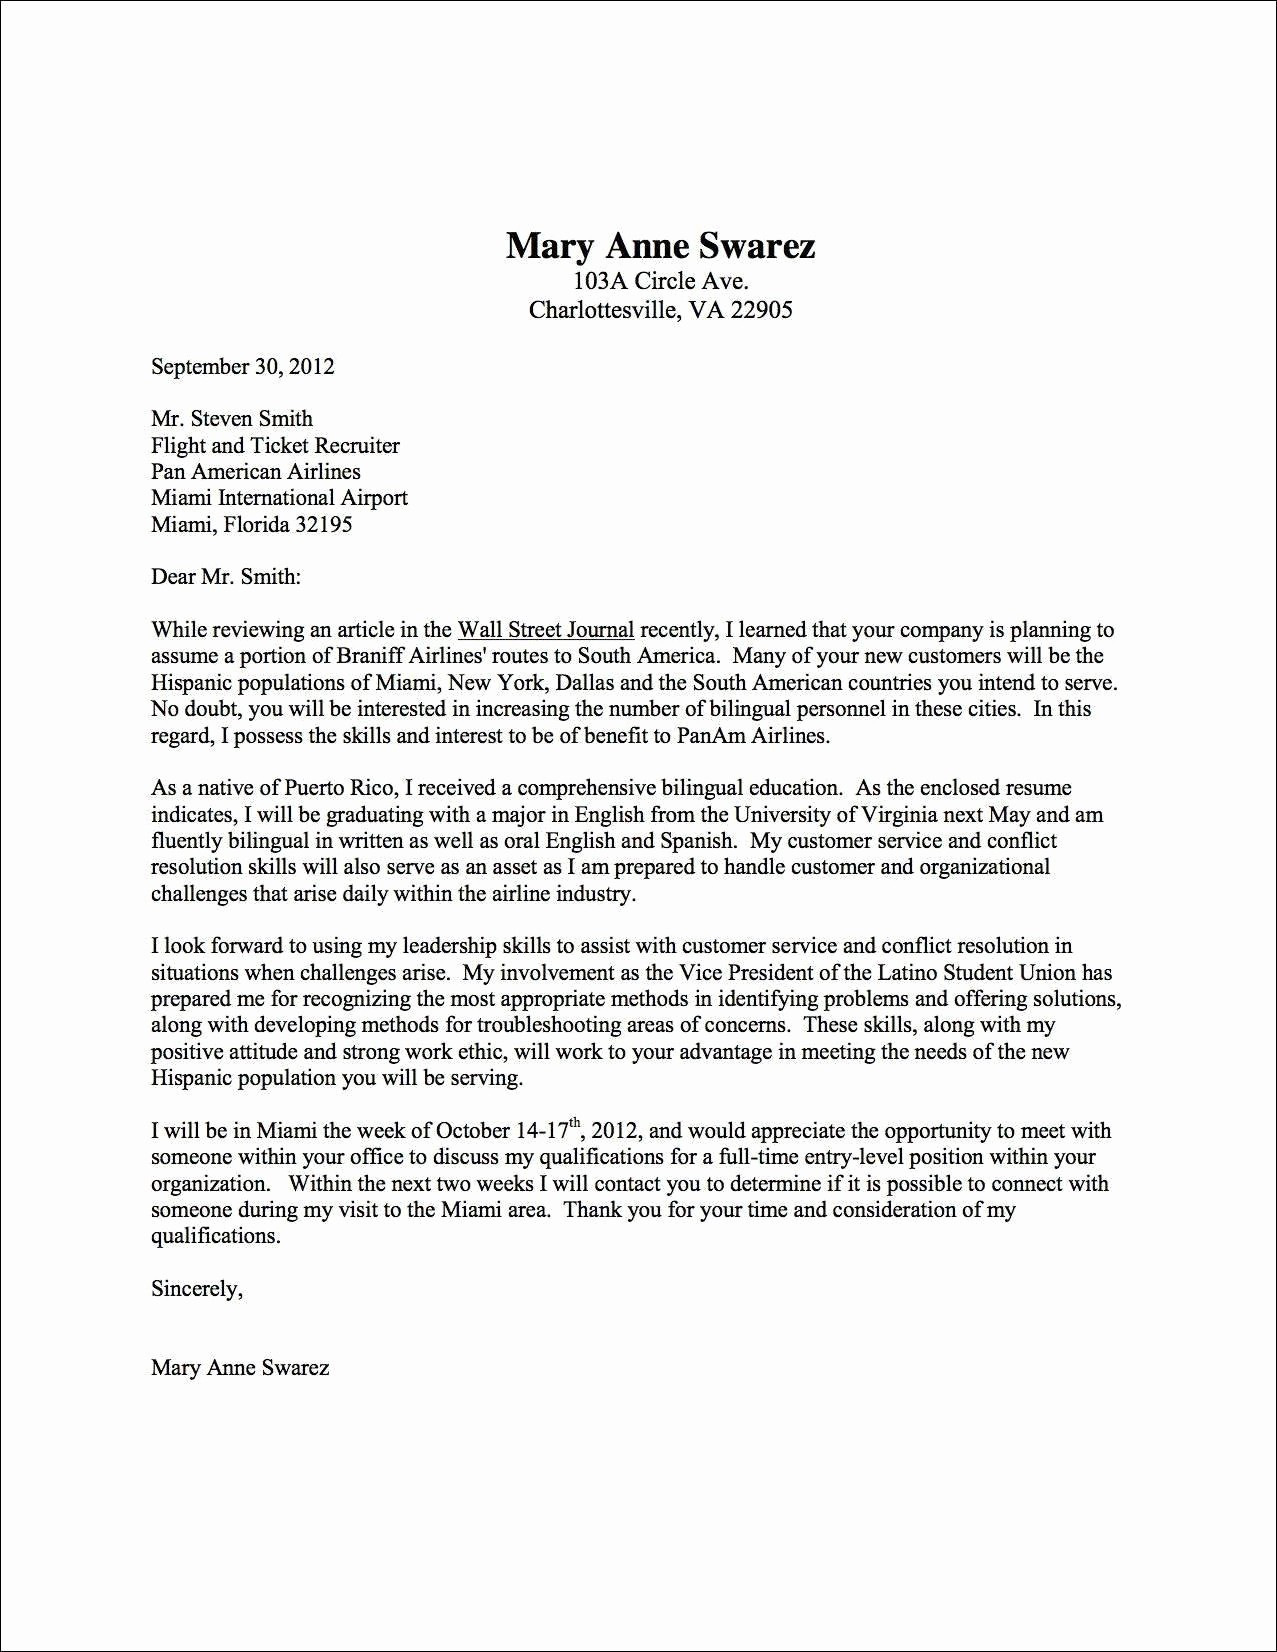 Cover Letter Template Free Download Luxury Cover Letter Samples Download Free Cover Letter Templates